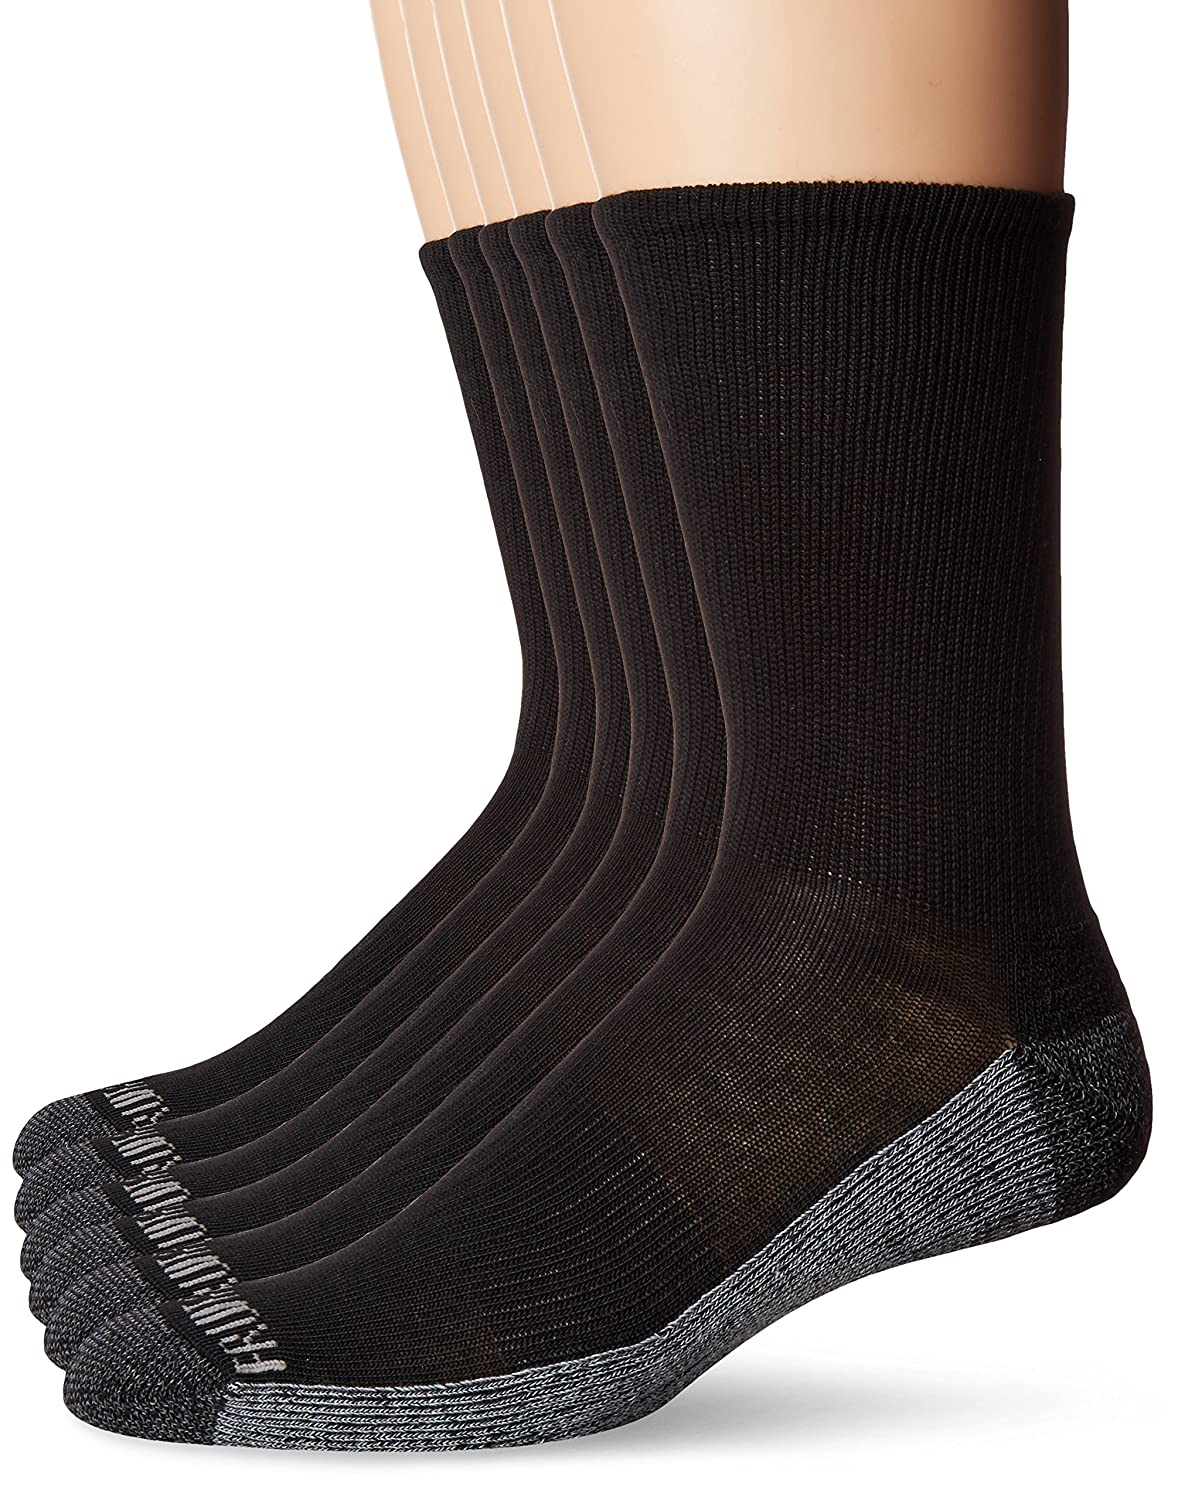 Fruit of the Loom Men's Essential 6 Pack Casual Crew Socks | Arch Support | Black & White